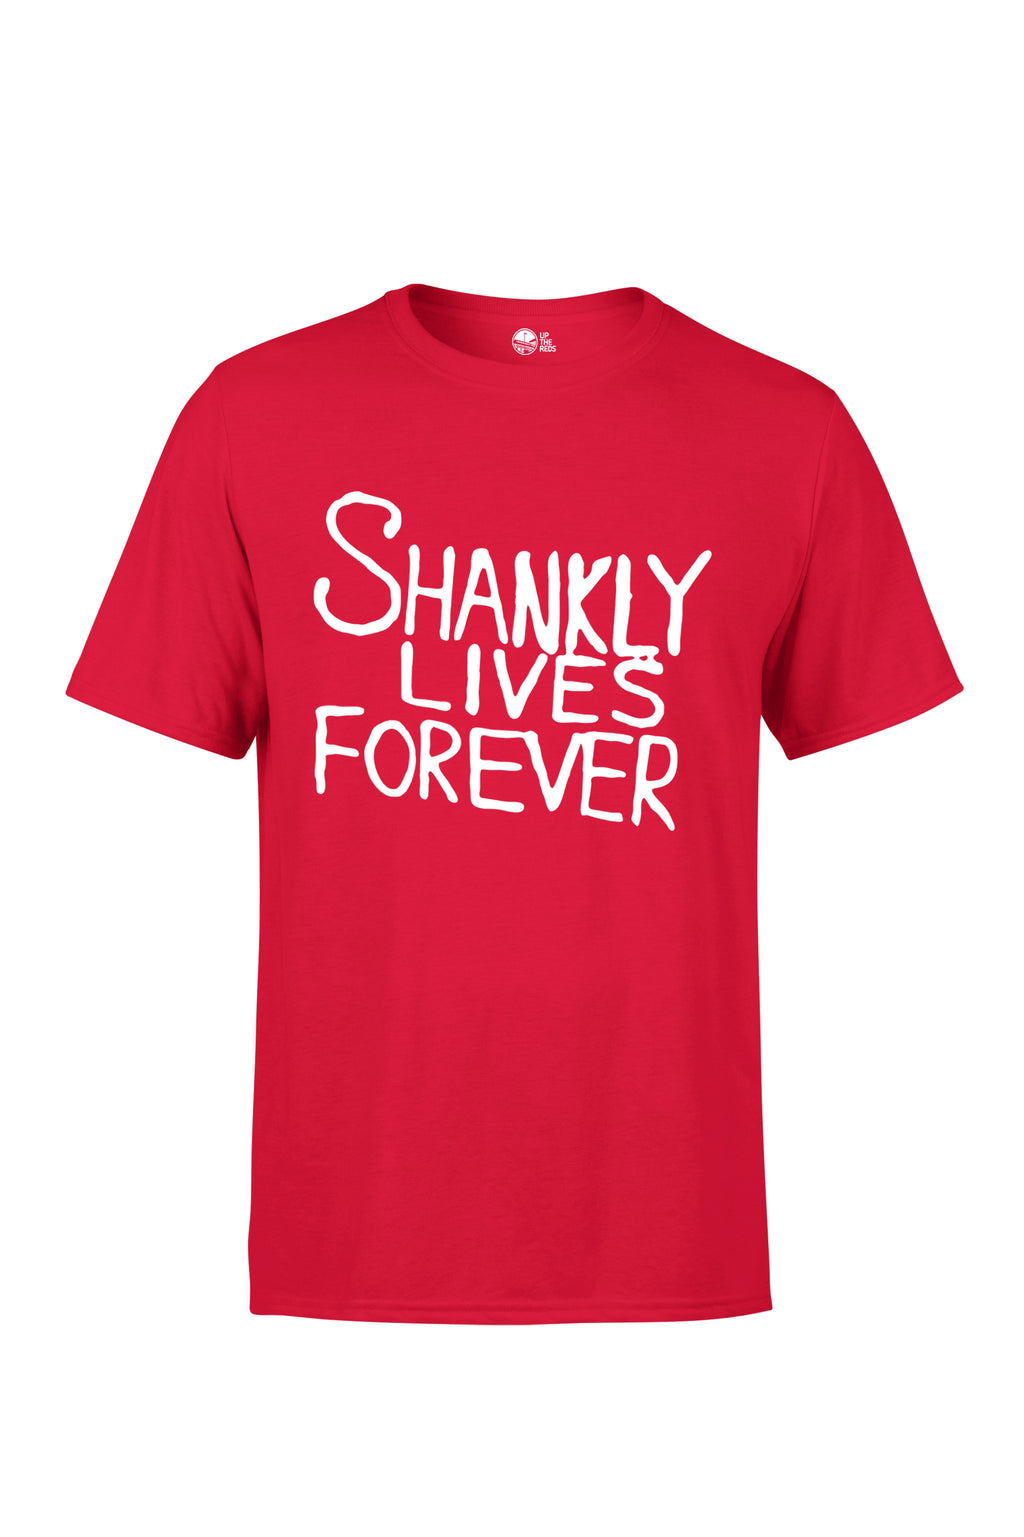 UTR - Shankly Lives Forever (White Text)